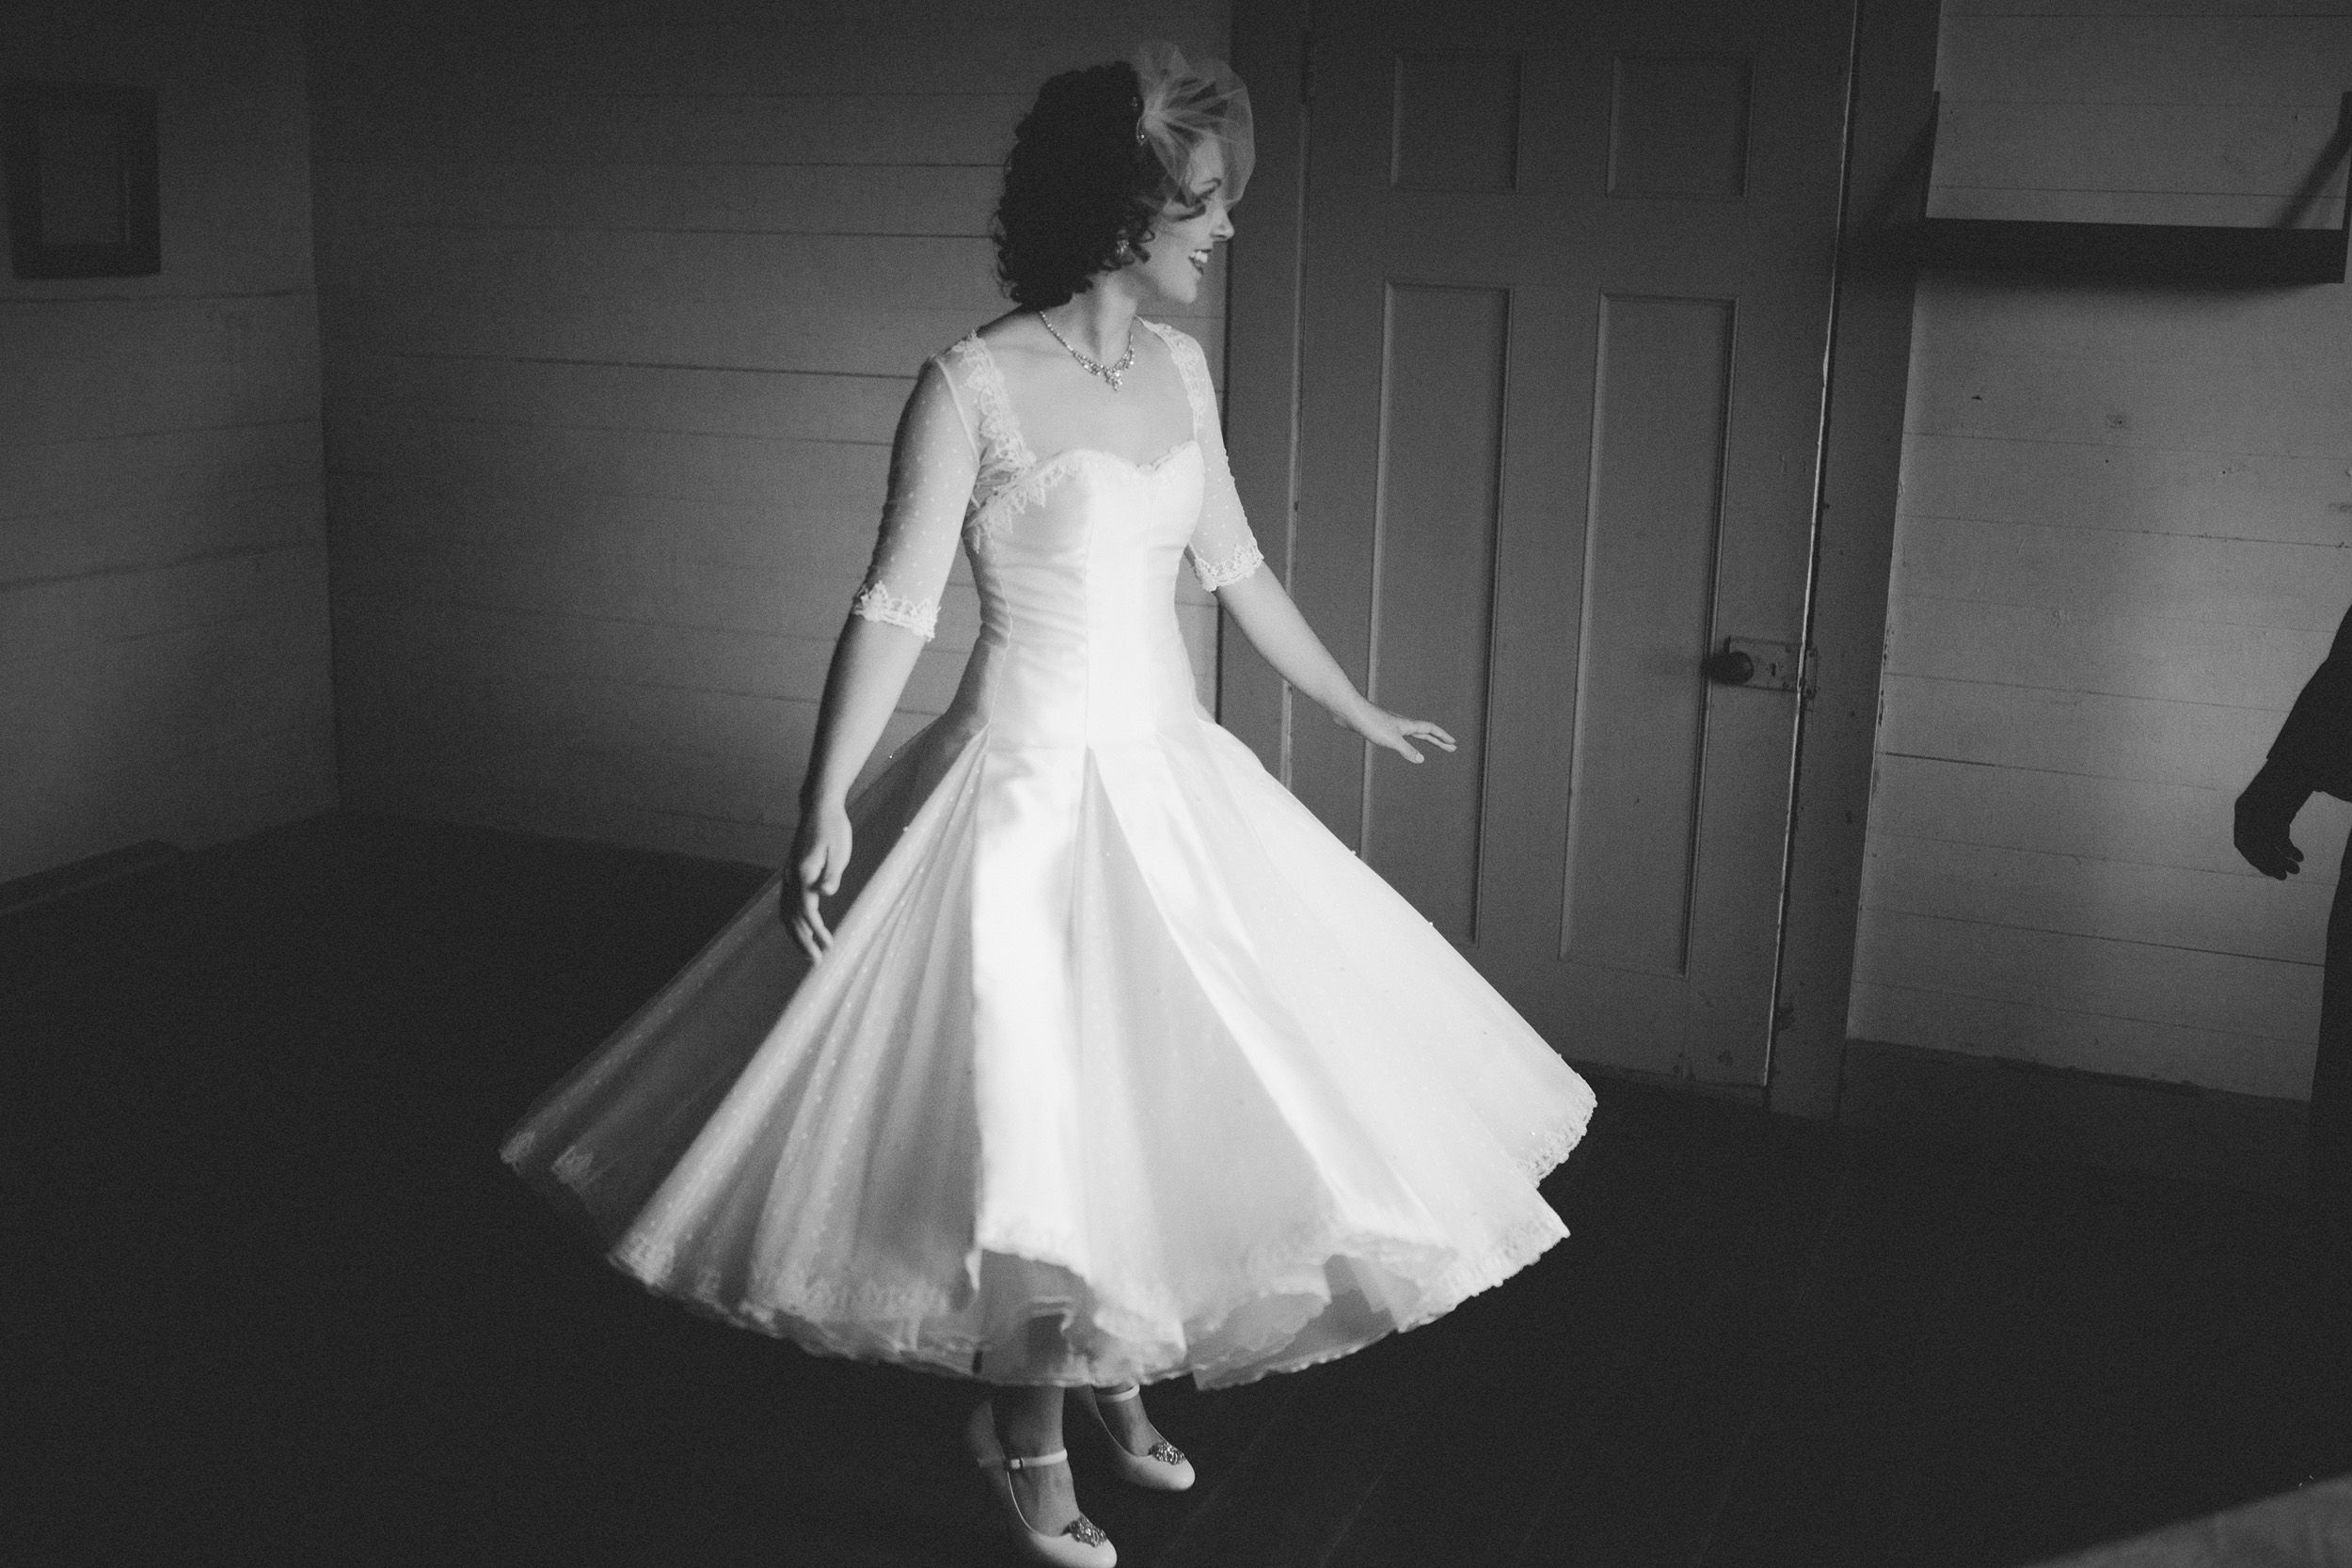 Homemade wedding gown weddinginspiration weddingphotography